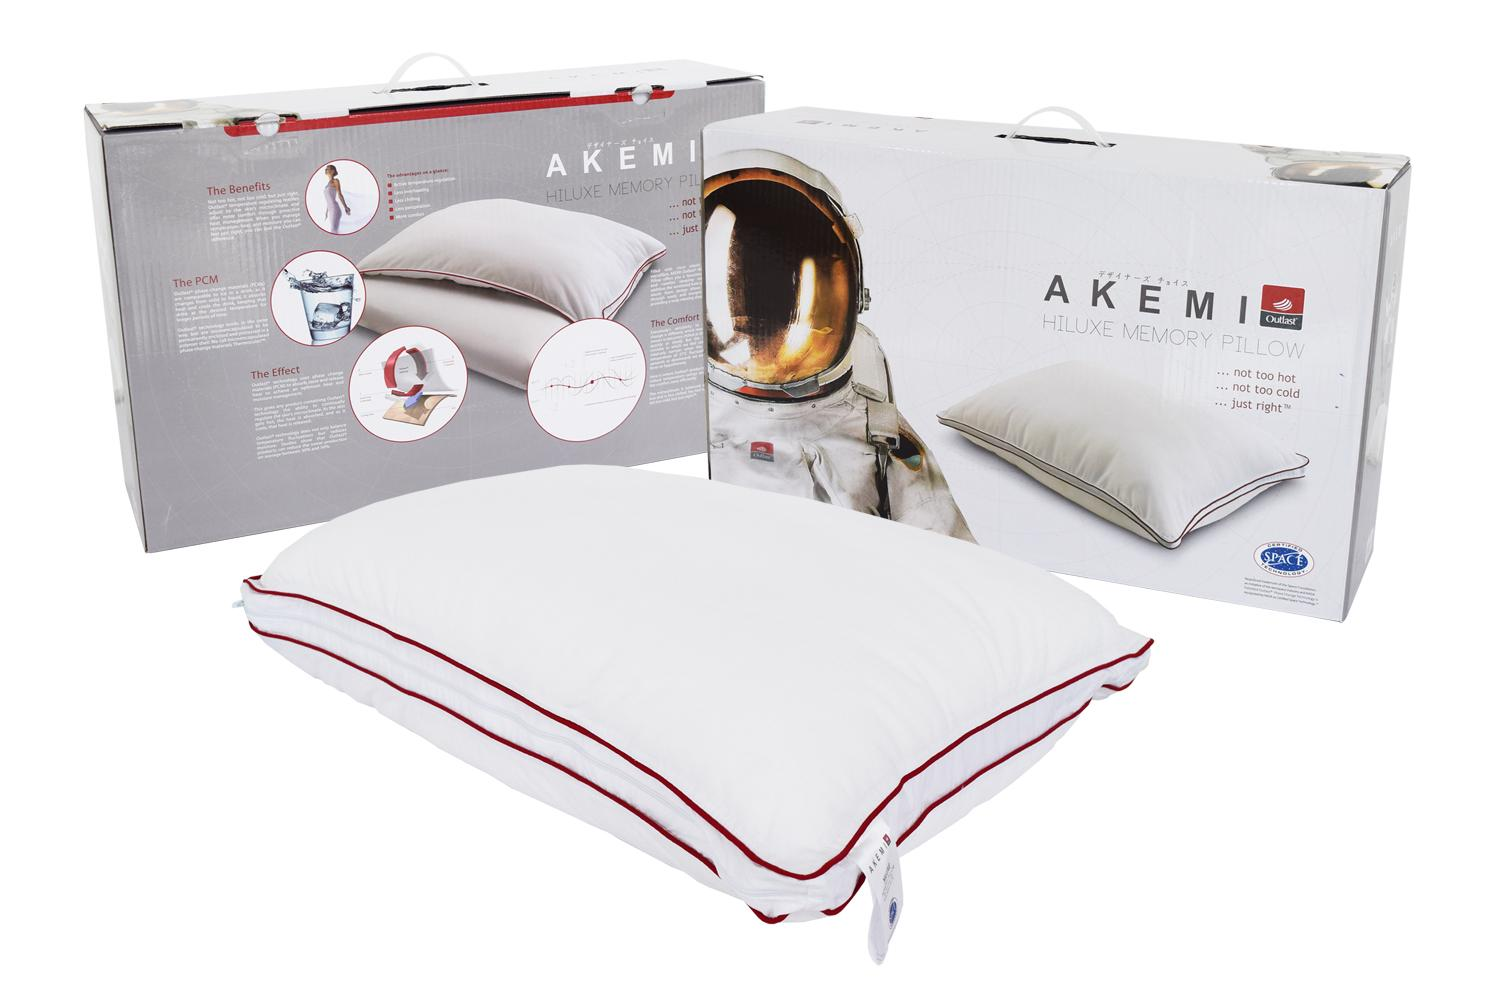 Sale Akemi Outlast Hiluxe Memory Pillow Online Singapore